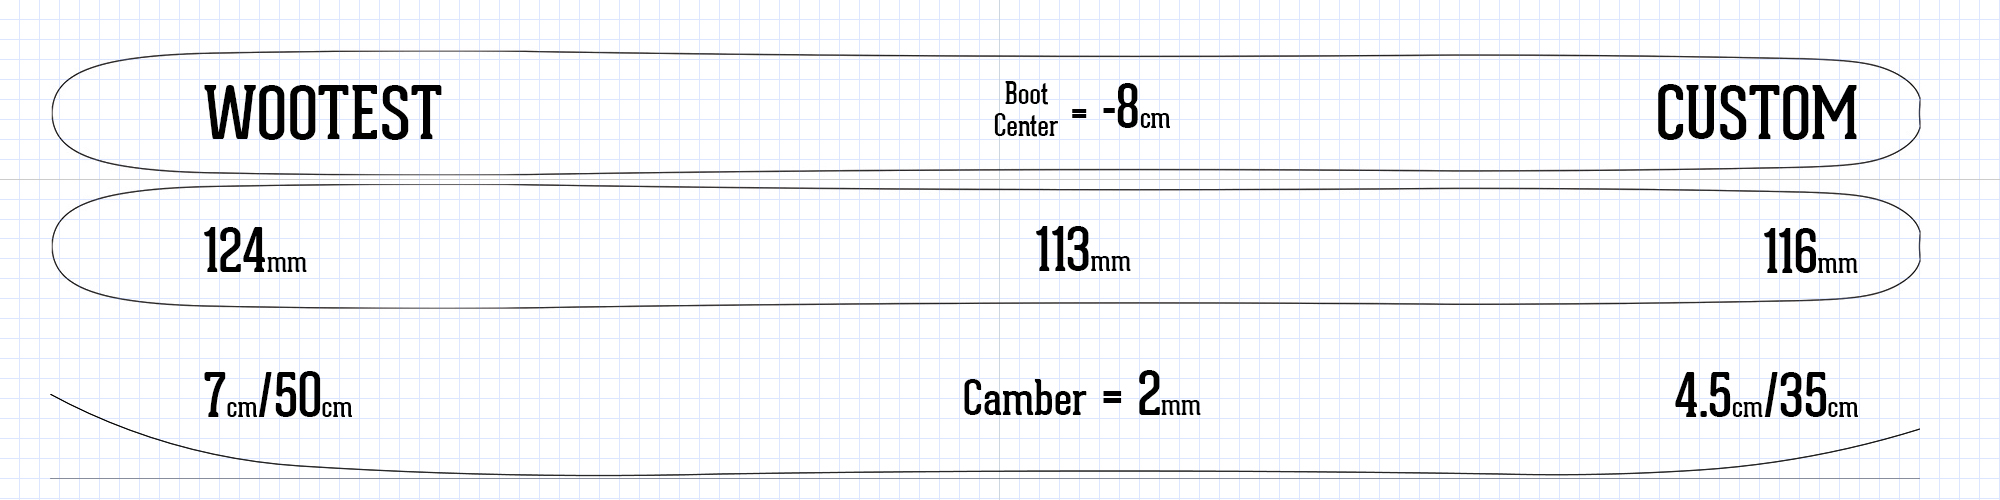 Wootest ski information spec sheet rocker camber profile